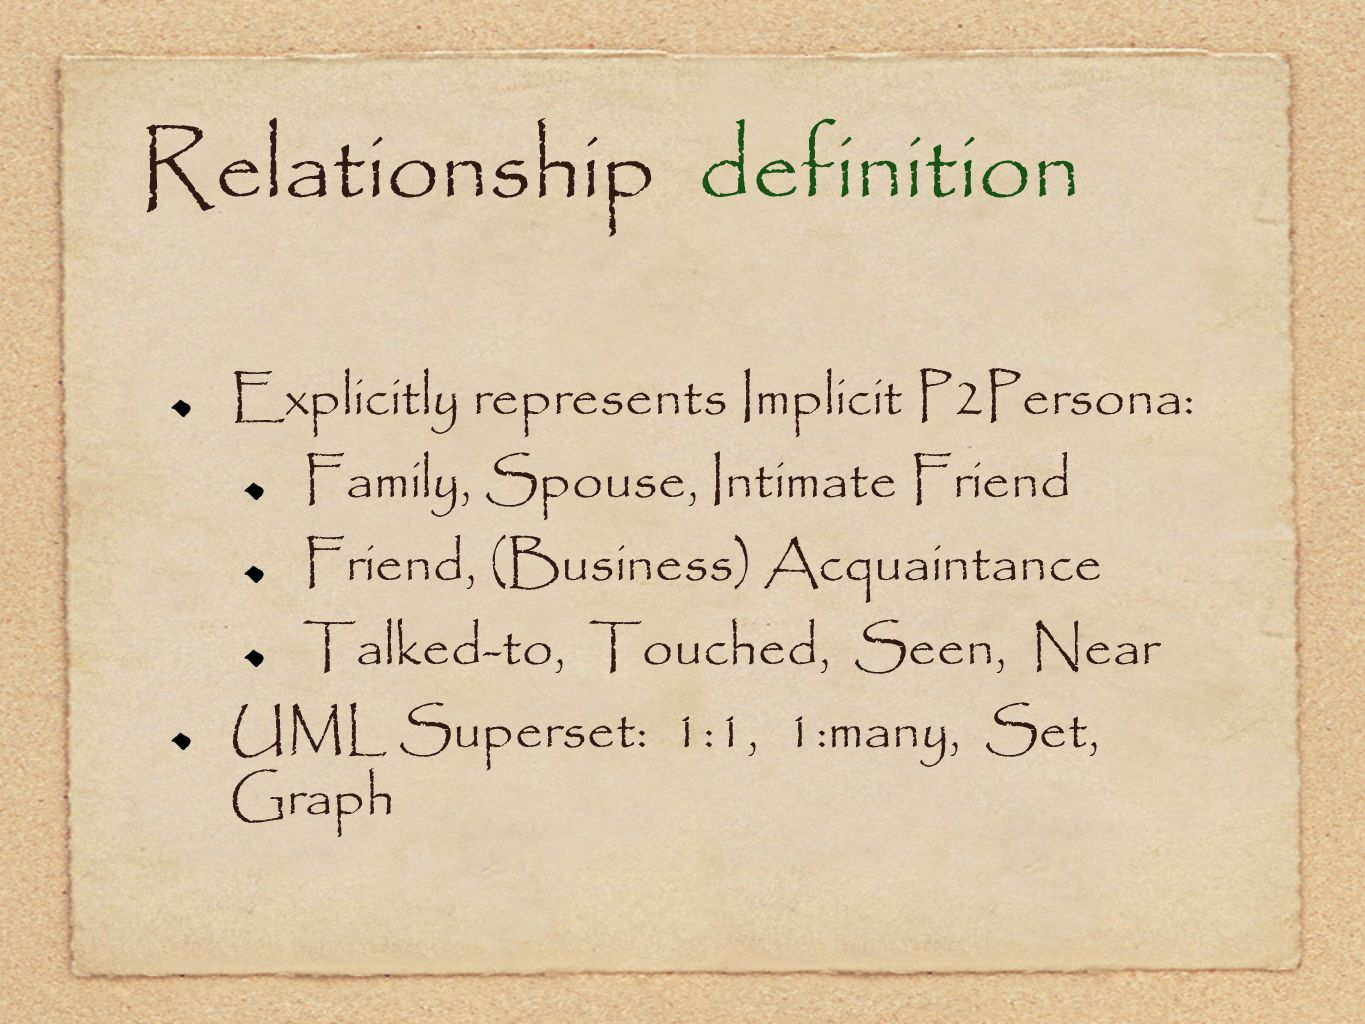 Relationship definition